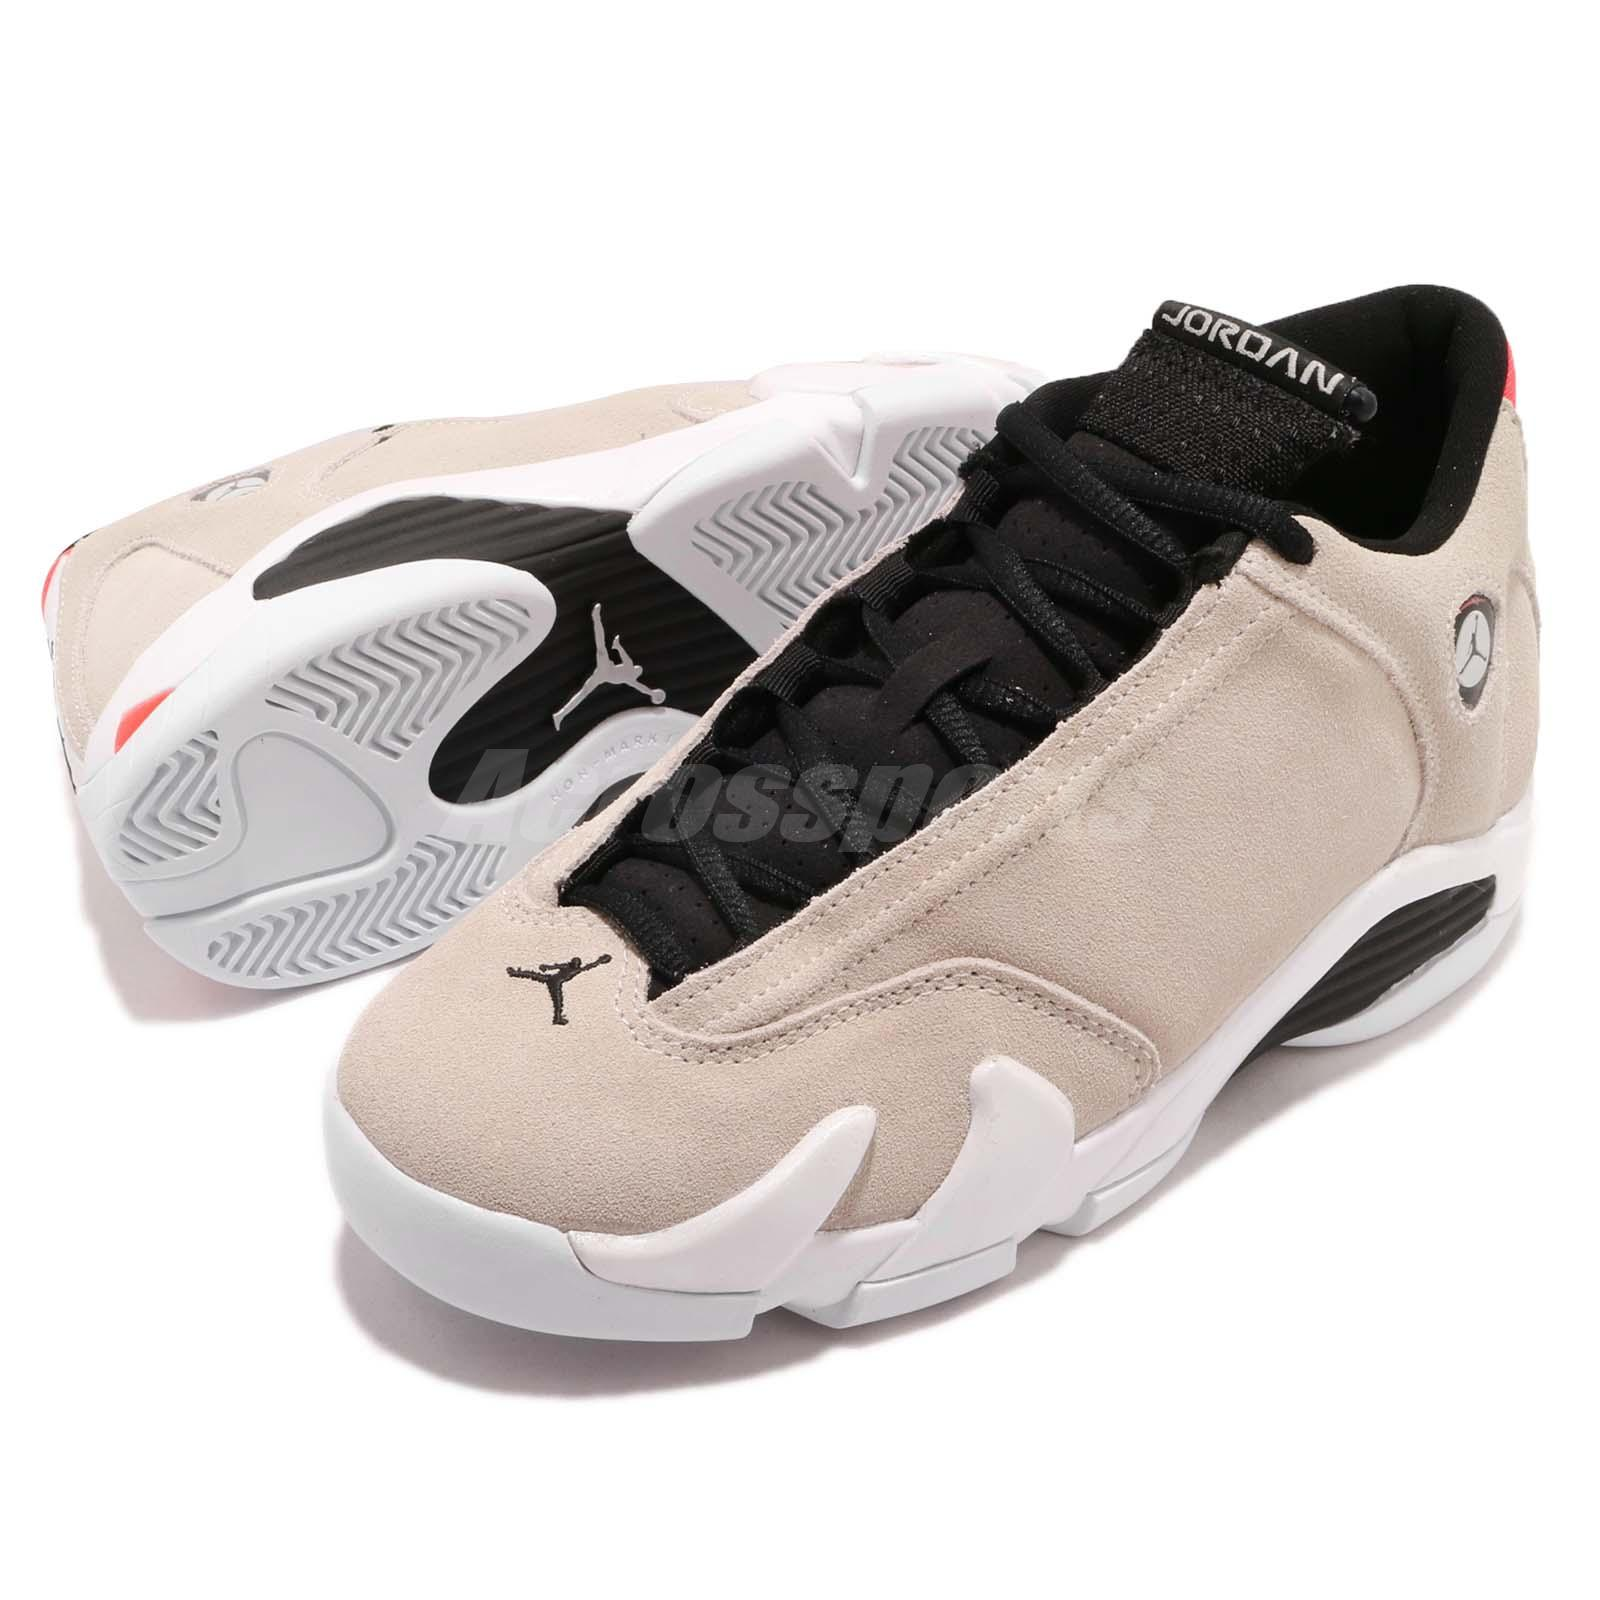 7b0557fac0d361 Details about Nike Air Jordan 14 Retro BG Desert Sand Kid Women Basketball  Shoes 487524-021